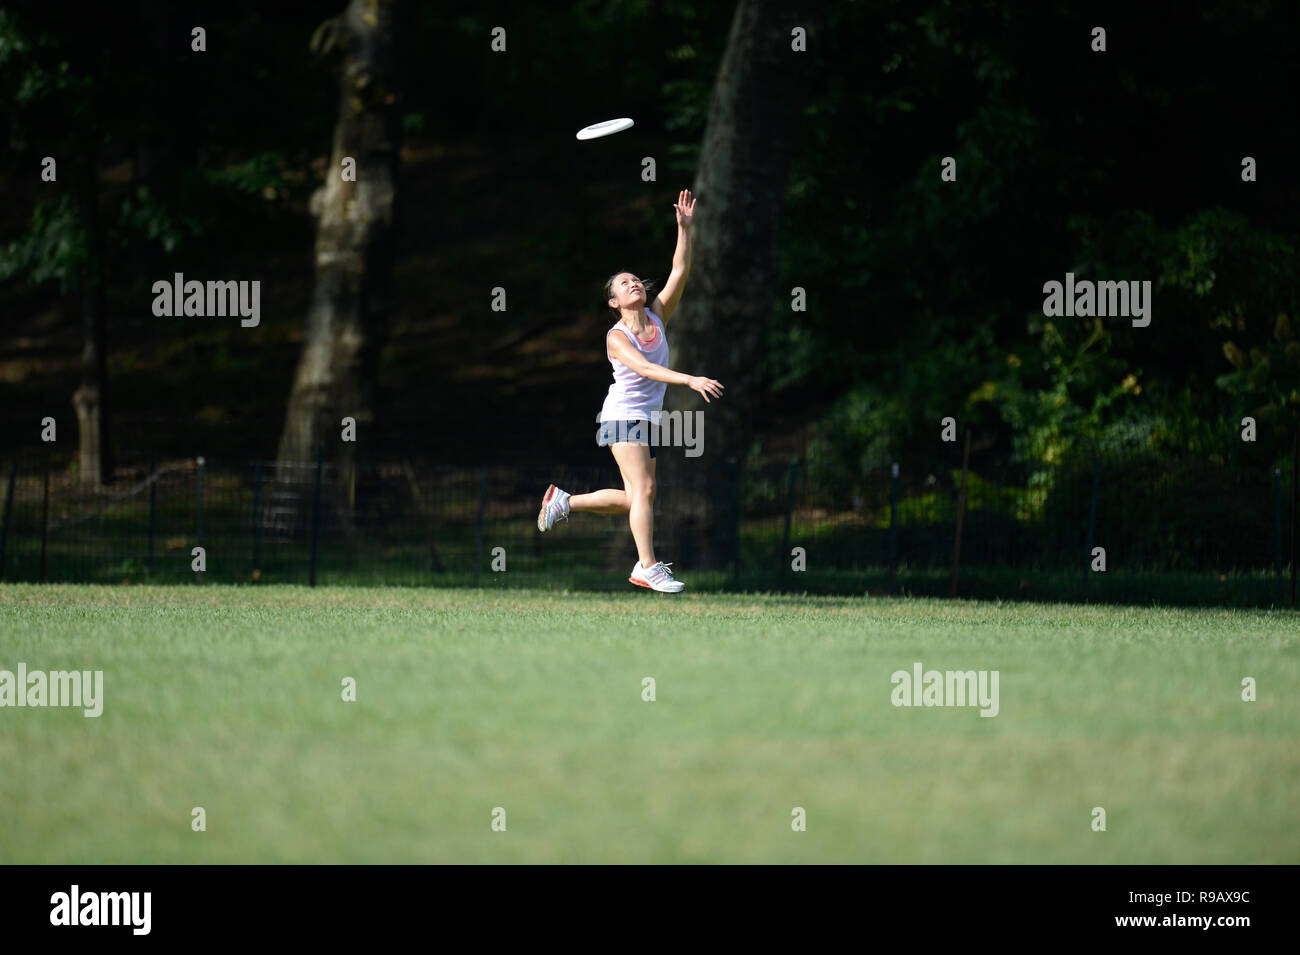 Girl playing frisbee in Central Park in New York City Stock Photo